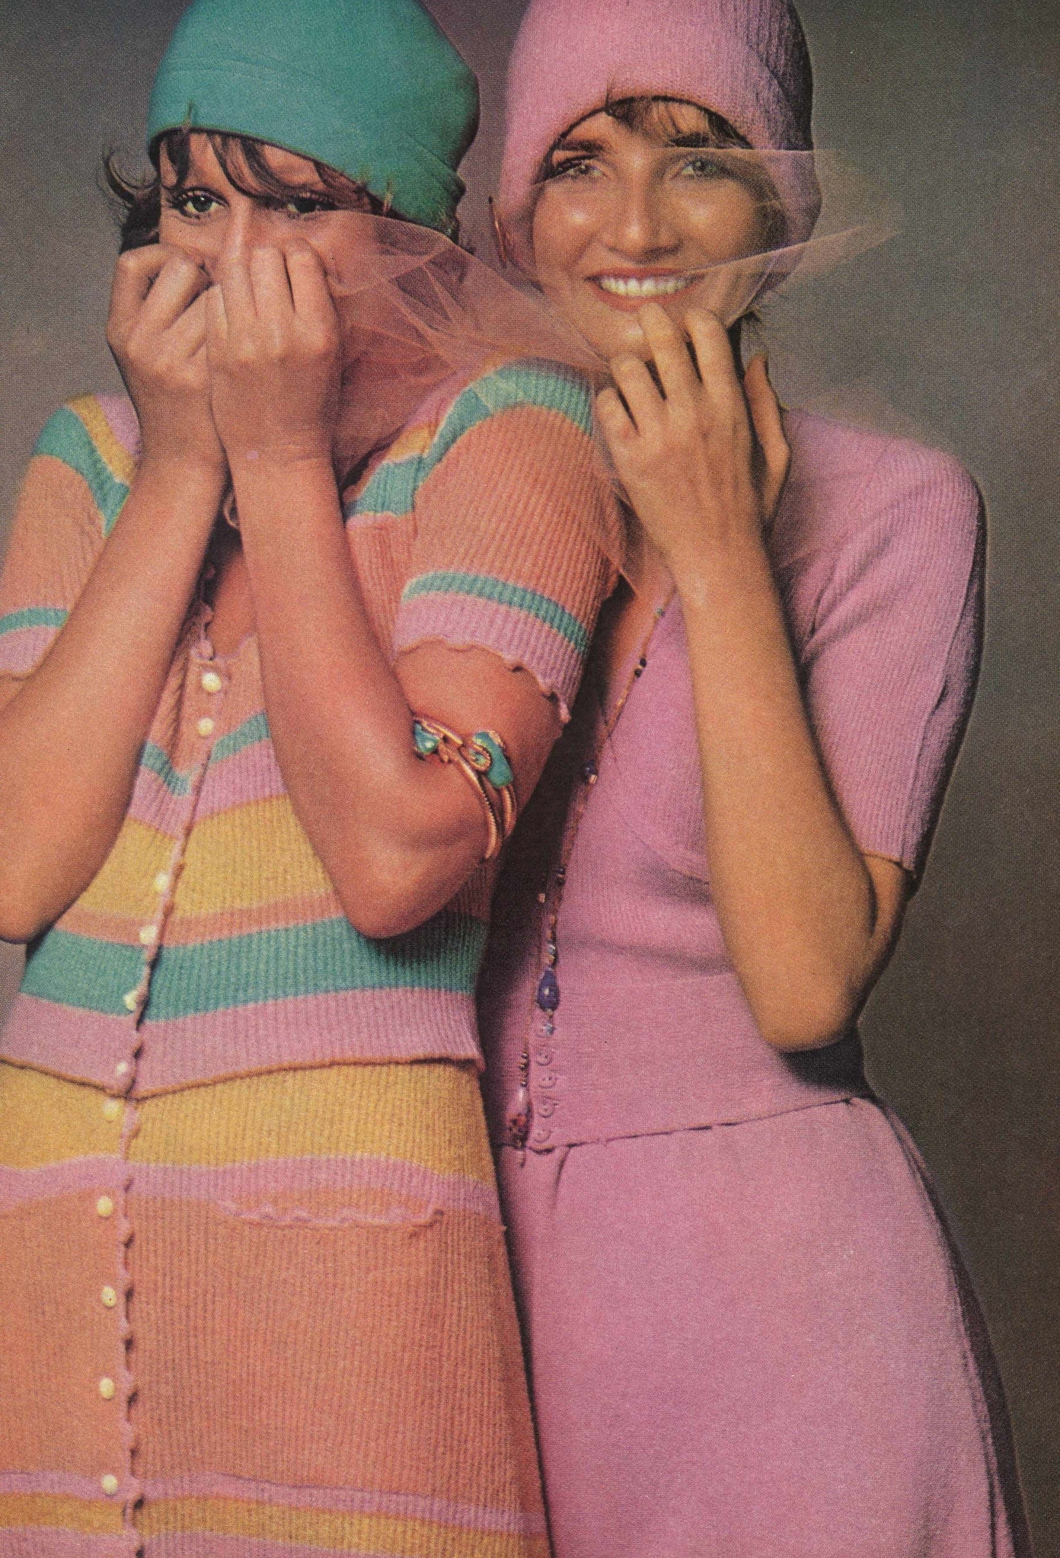 Vintage Fashion Spread Harper's Bazaar Feb 1970 Knit One, Love Two by Barbara Dordnick